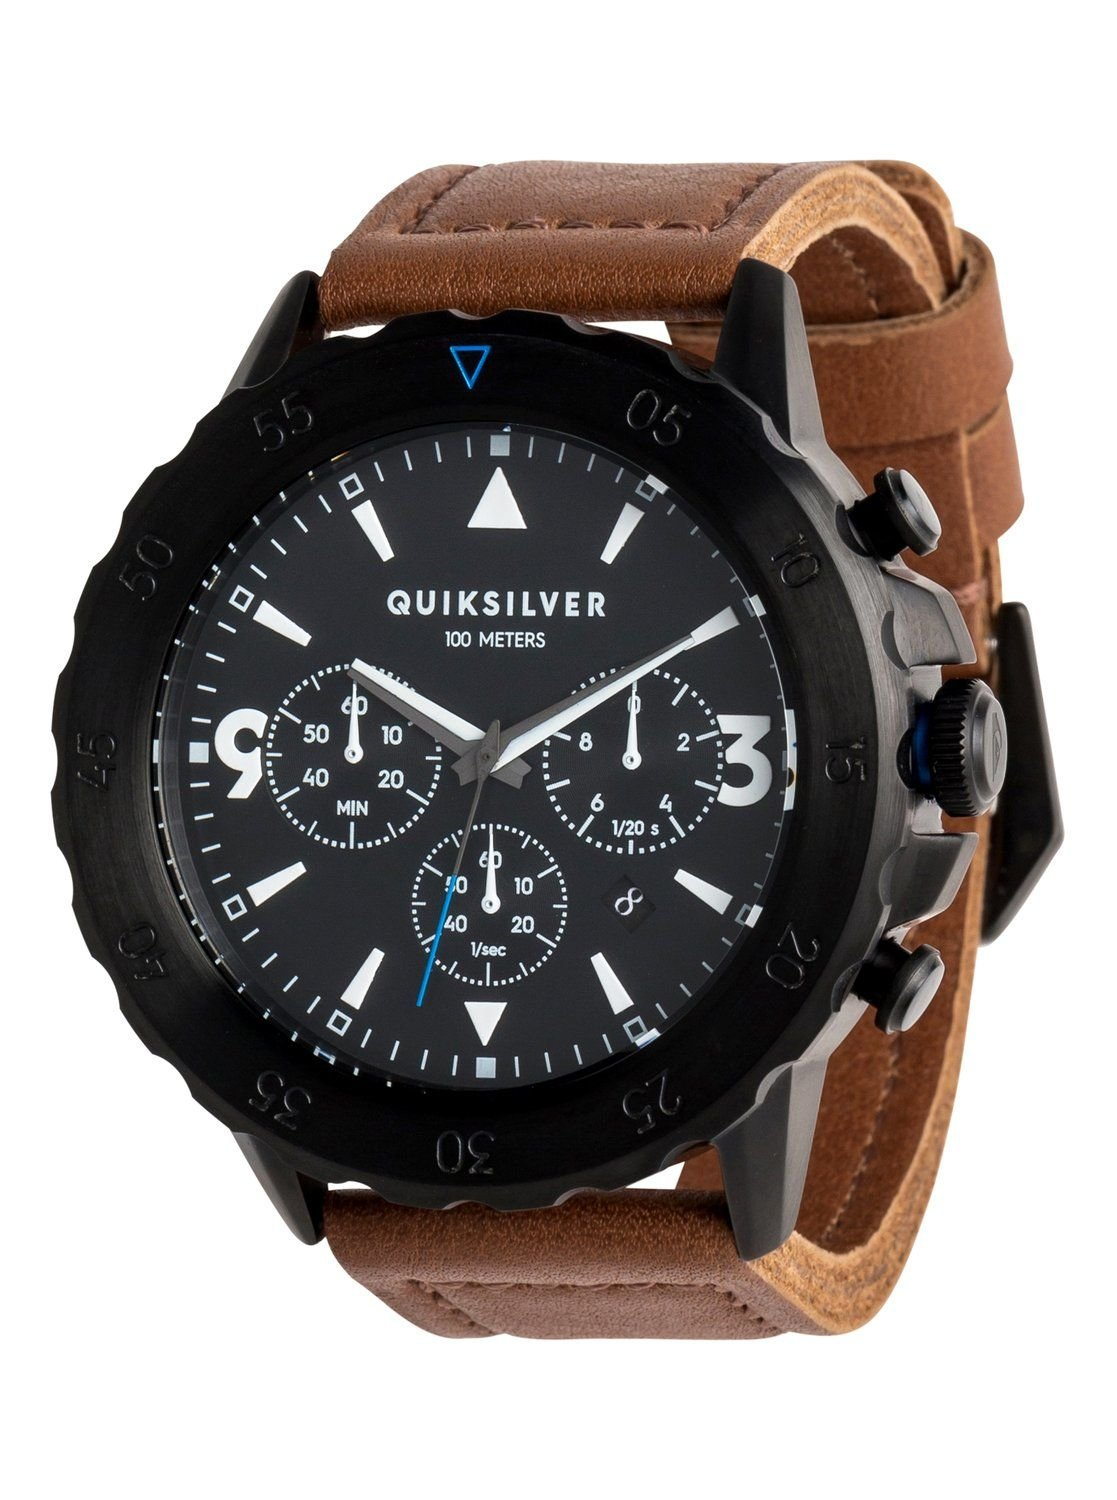 Quiksilver B-52 Chrono Leather analogik watch EQYWA03020